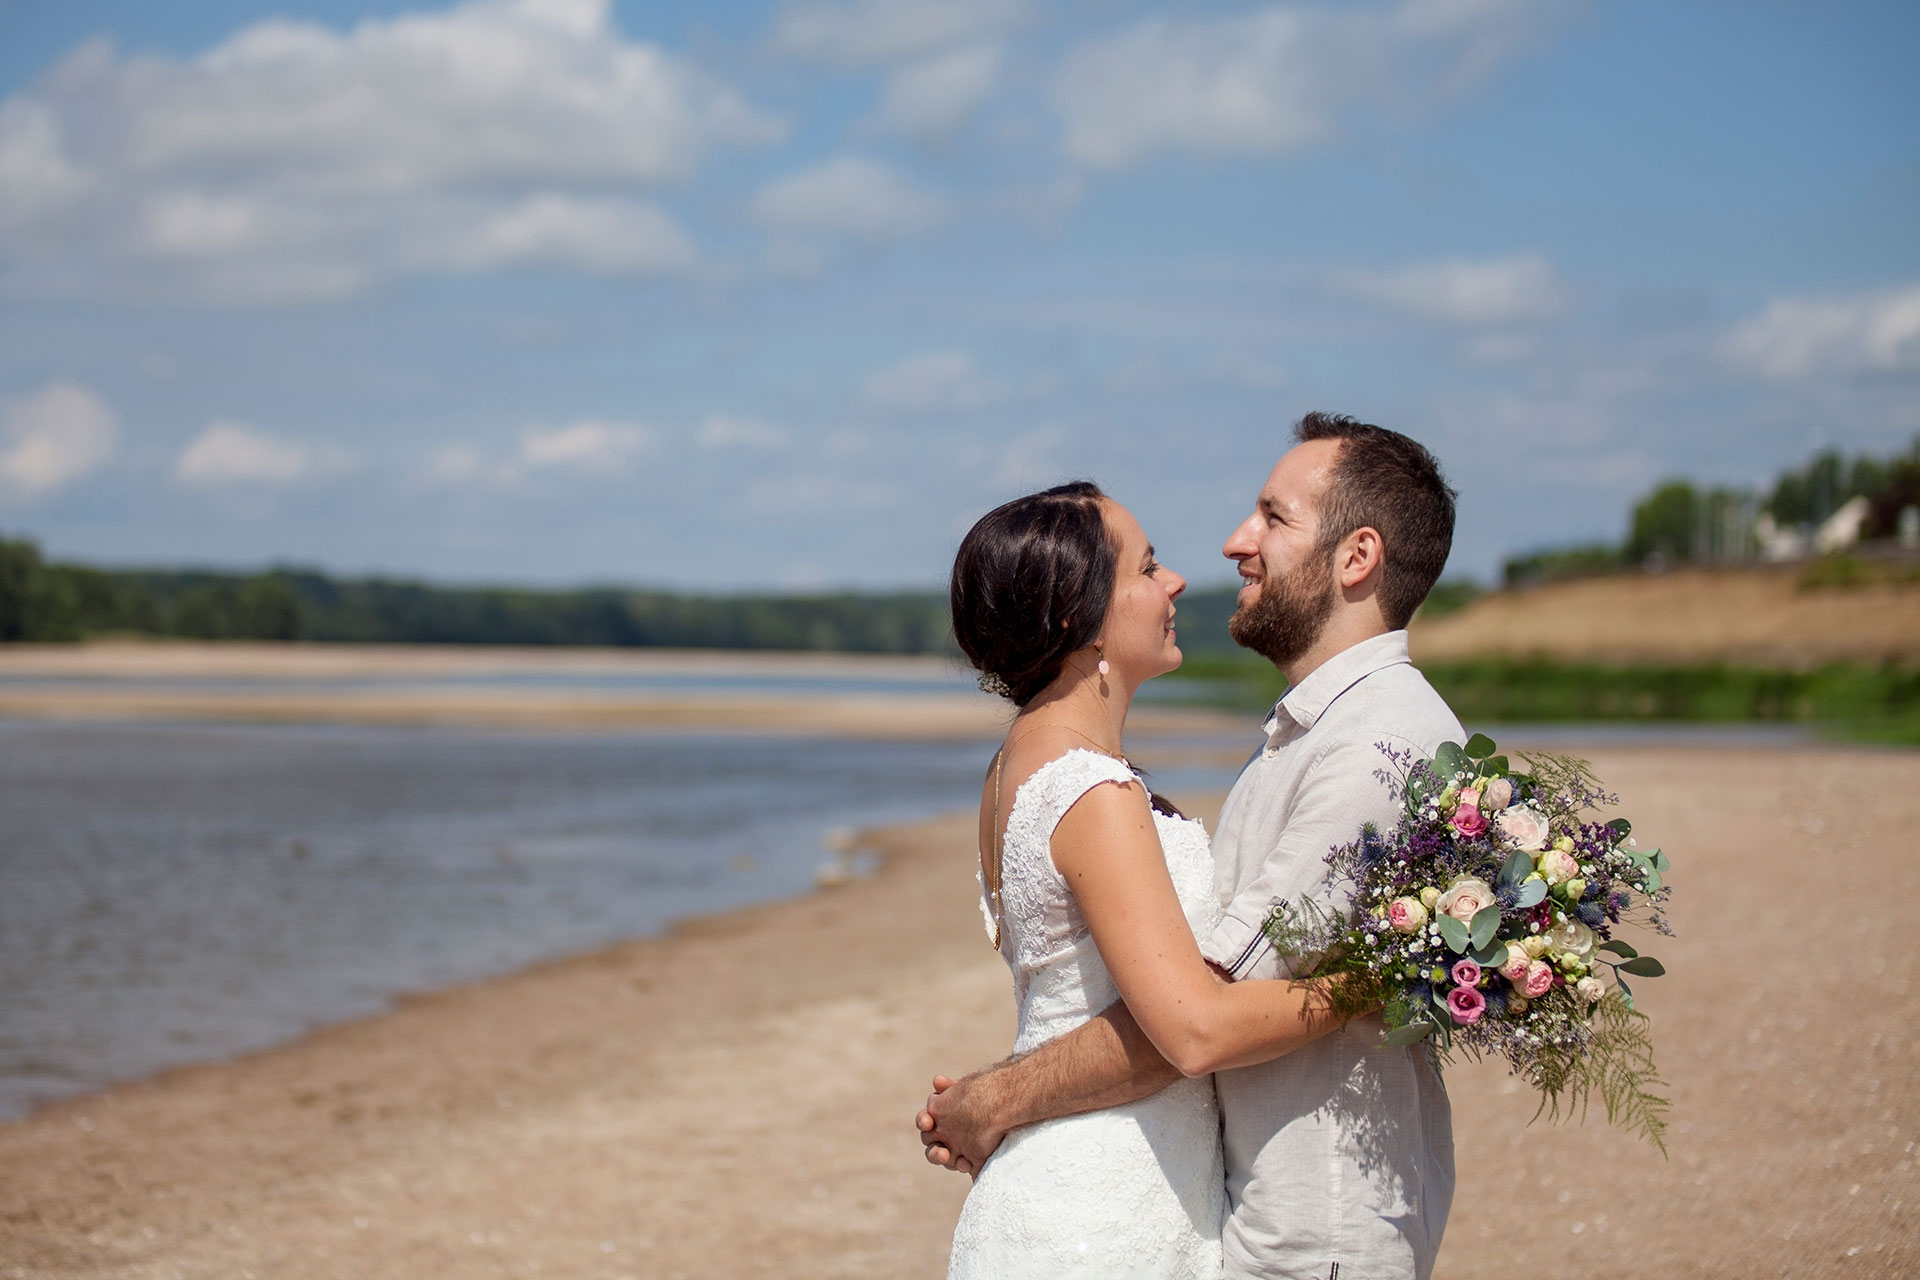 particuliers-evenements-mariage-oui-carla&jeremy-33